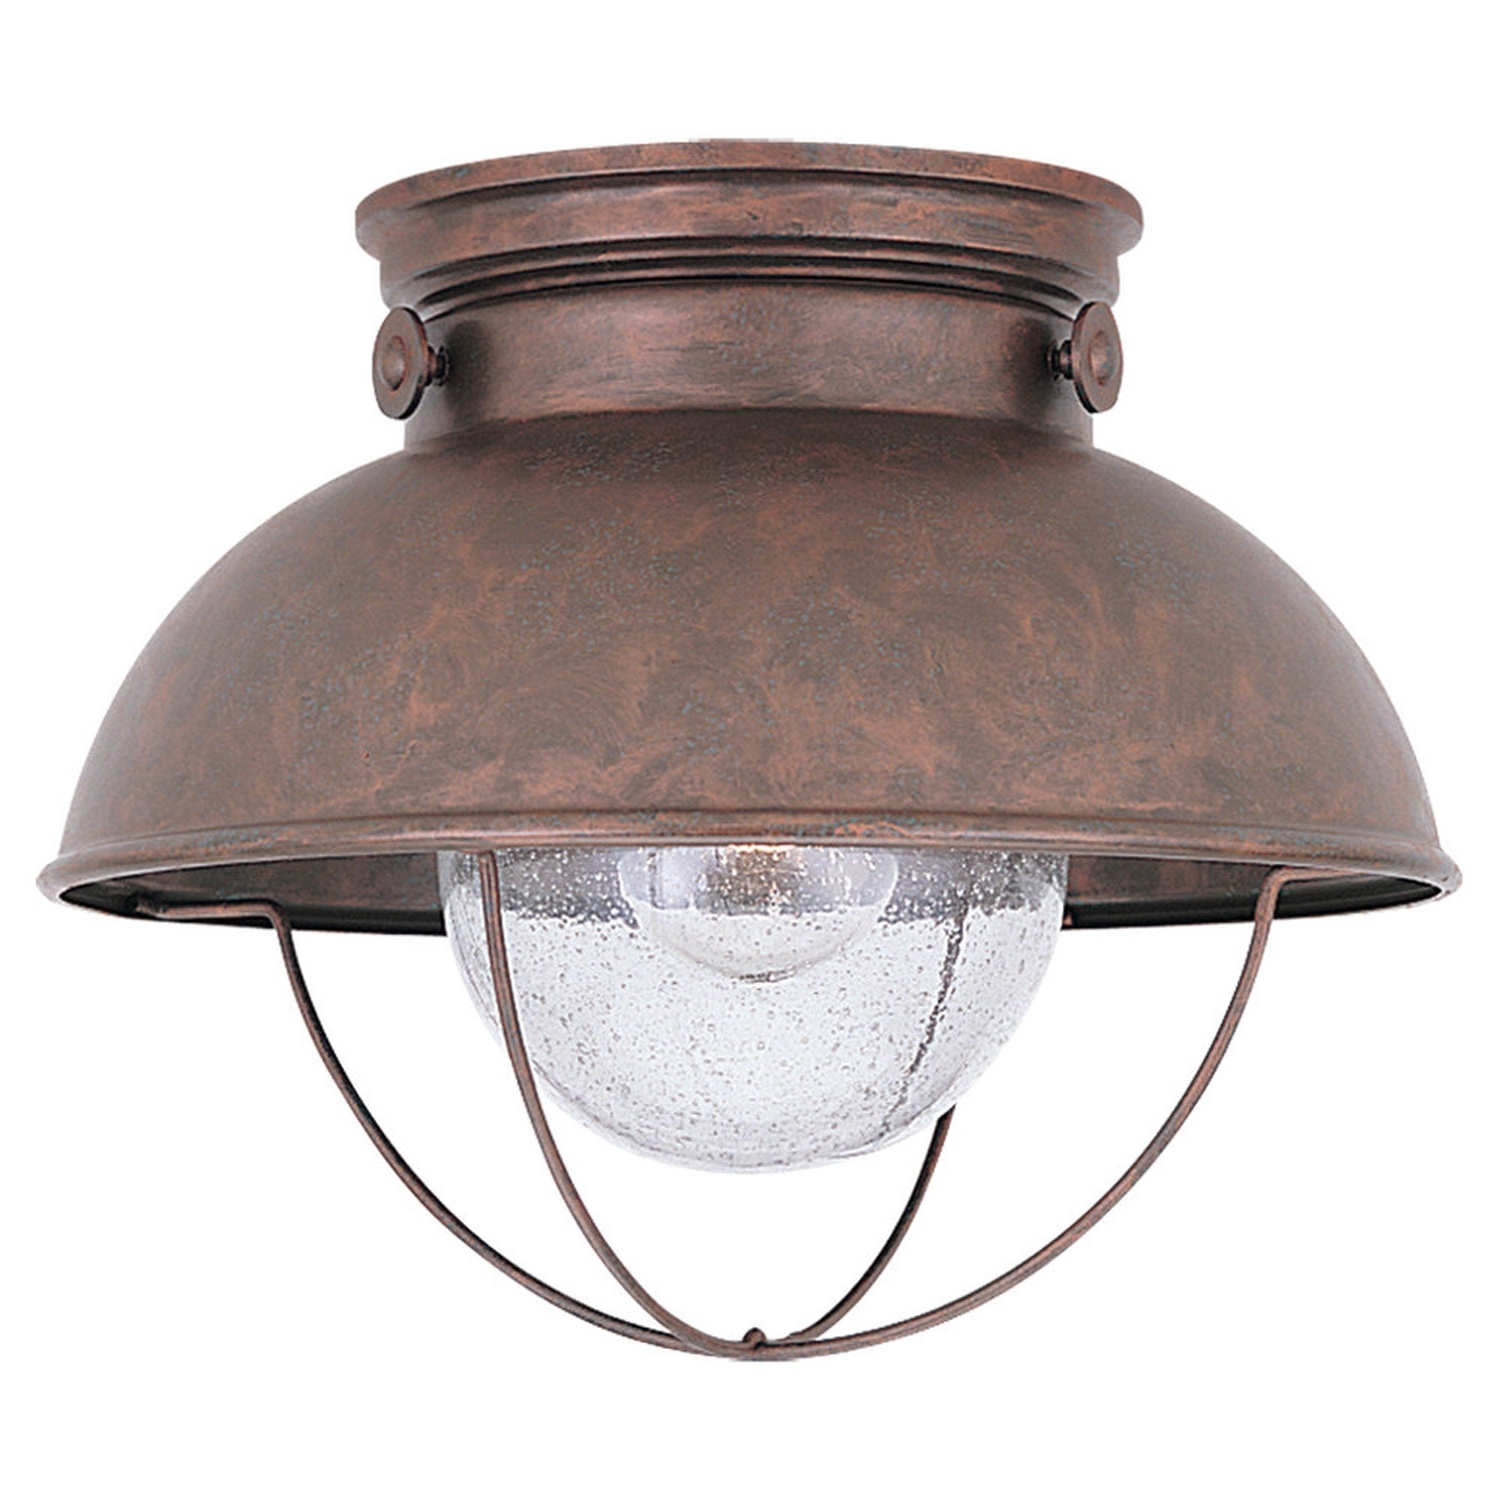 Bellacor In Most Popular Outdoor Entrance Ceiling Lights (View 3 of 20)